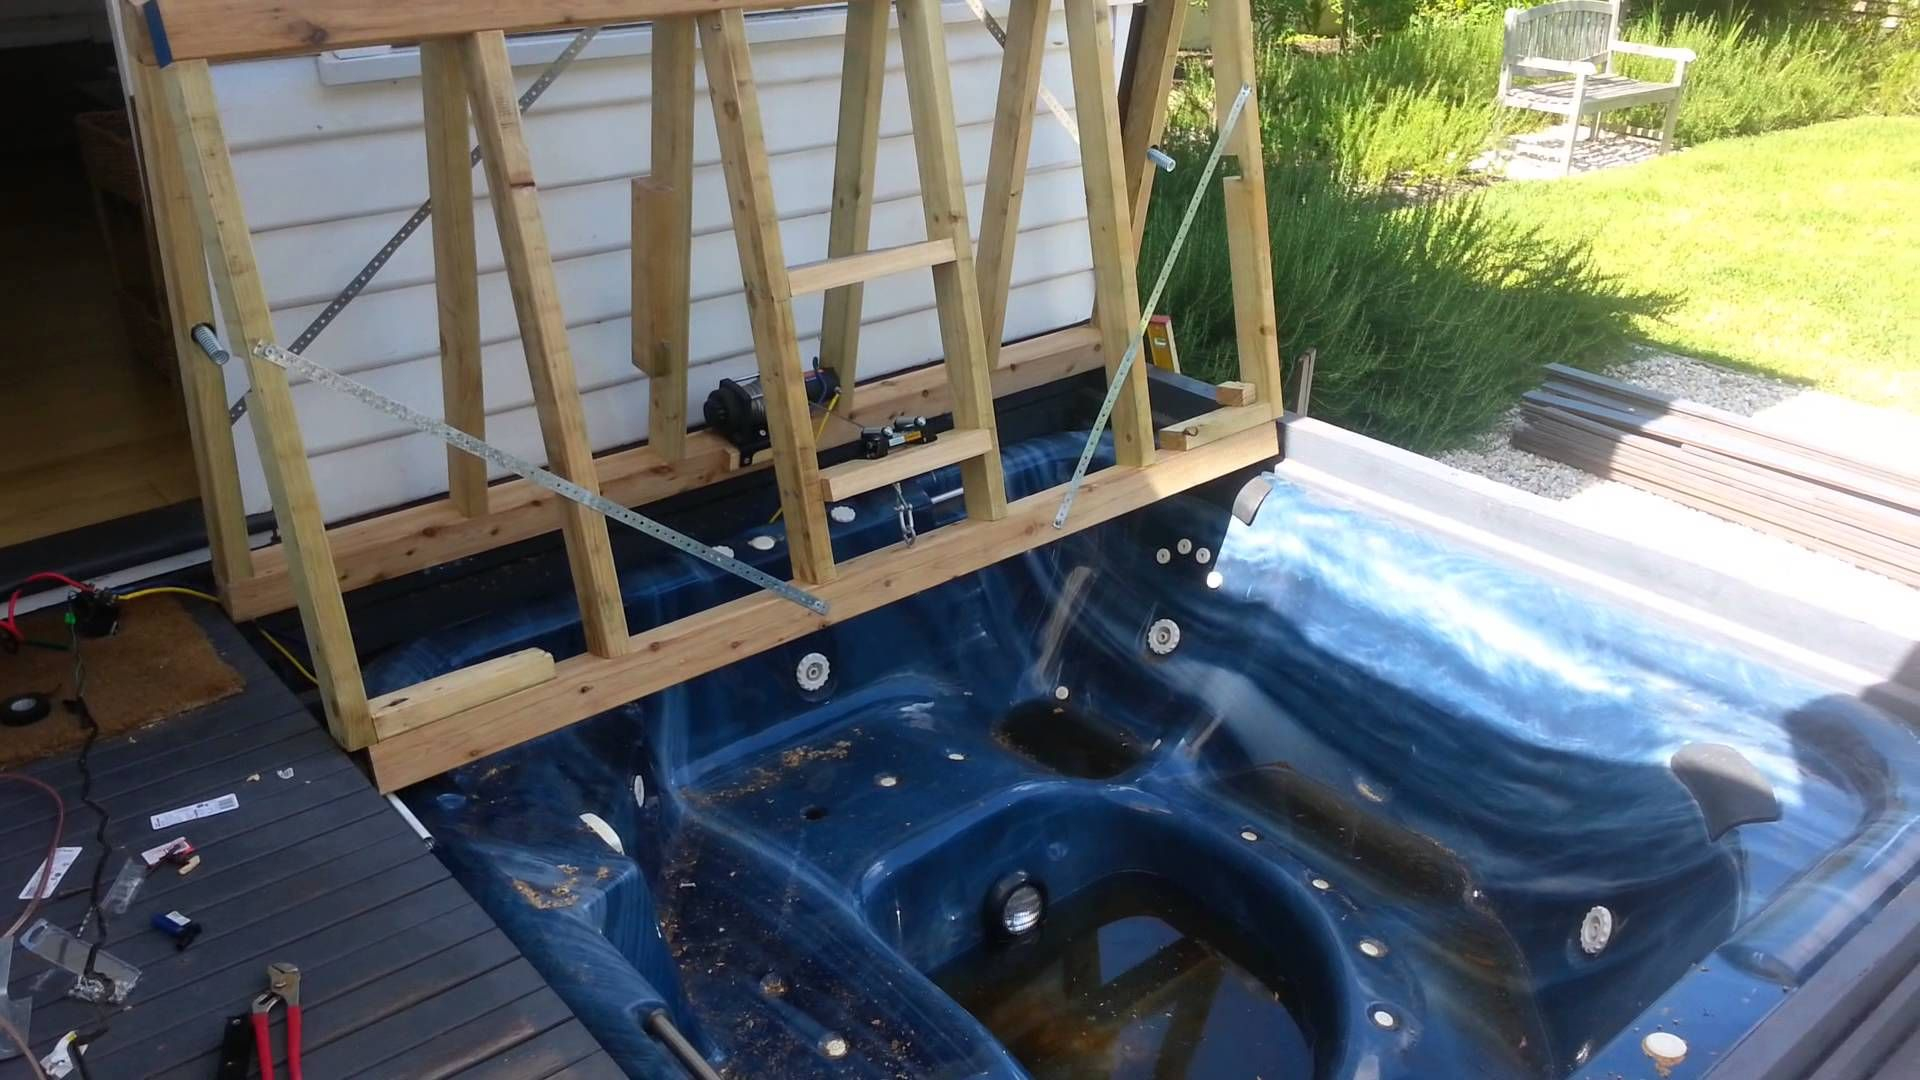 Bifold Deck Spa Cover 12v Winch Building A Deck Outdoor Living Deck Pool House Designs